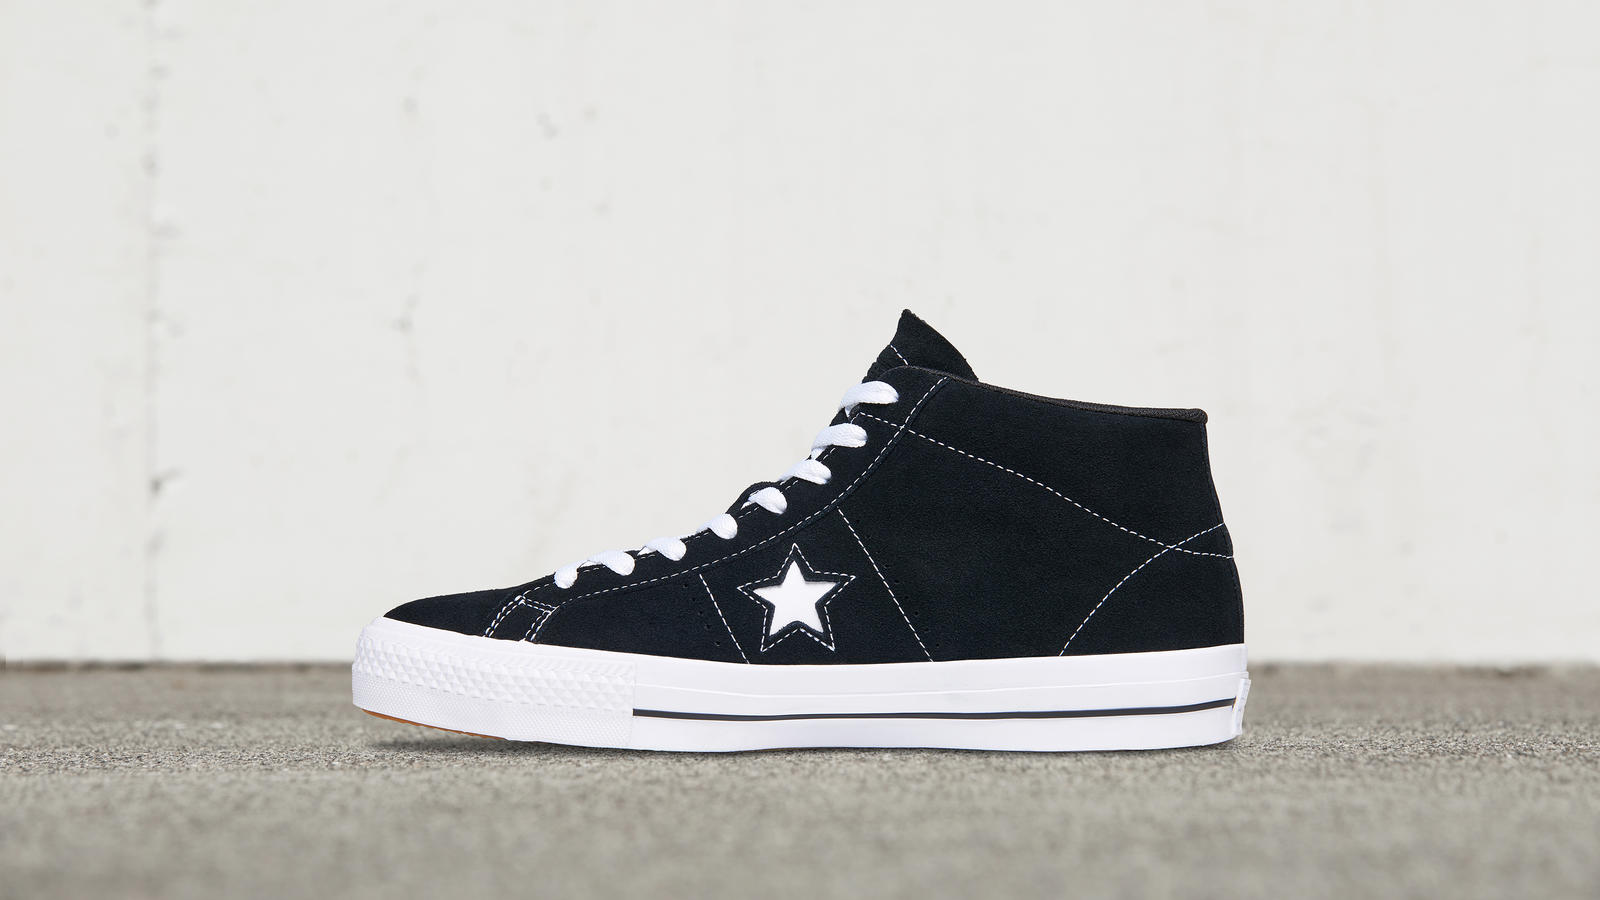 Converse Cons One Star Pro Suede Mid Top Nike News